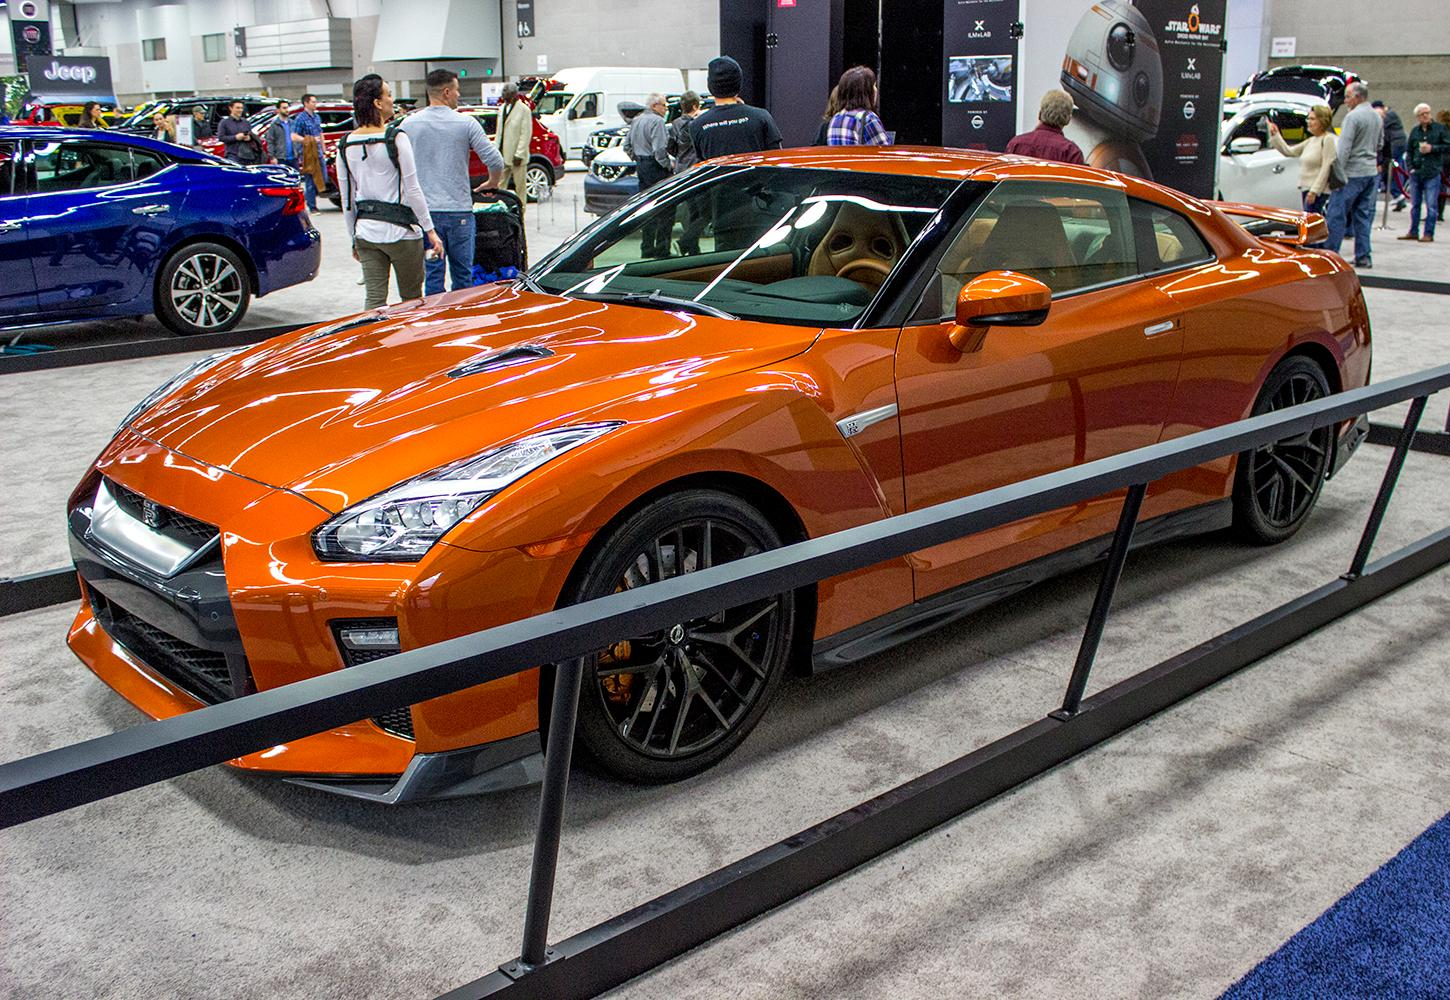 Nisssan - The Portland International Auto Show began at the Oregon Convention Center on Jan. 25, 2018. The event drew prospective buyers and others who enjoyed looking at and comparing vehicles. Photo by Amanda Butt